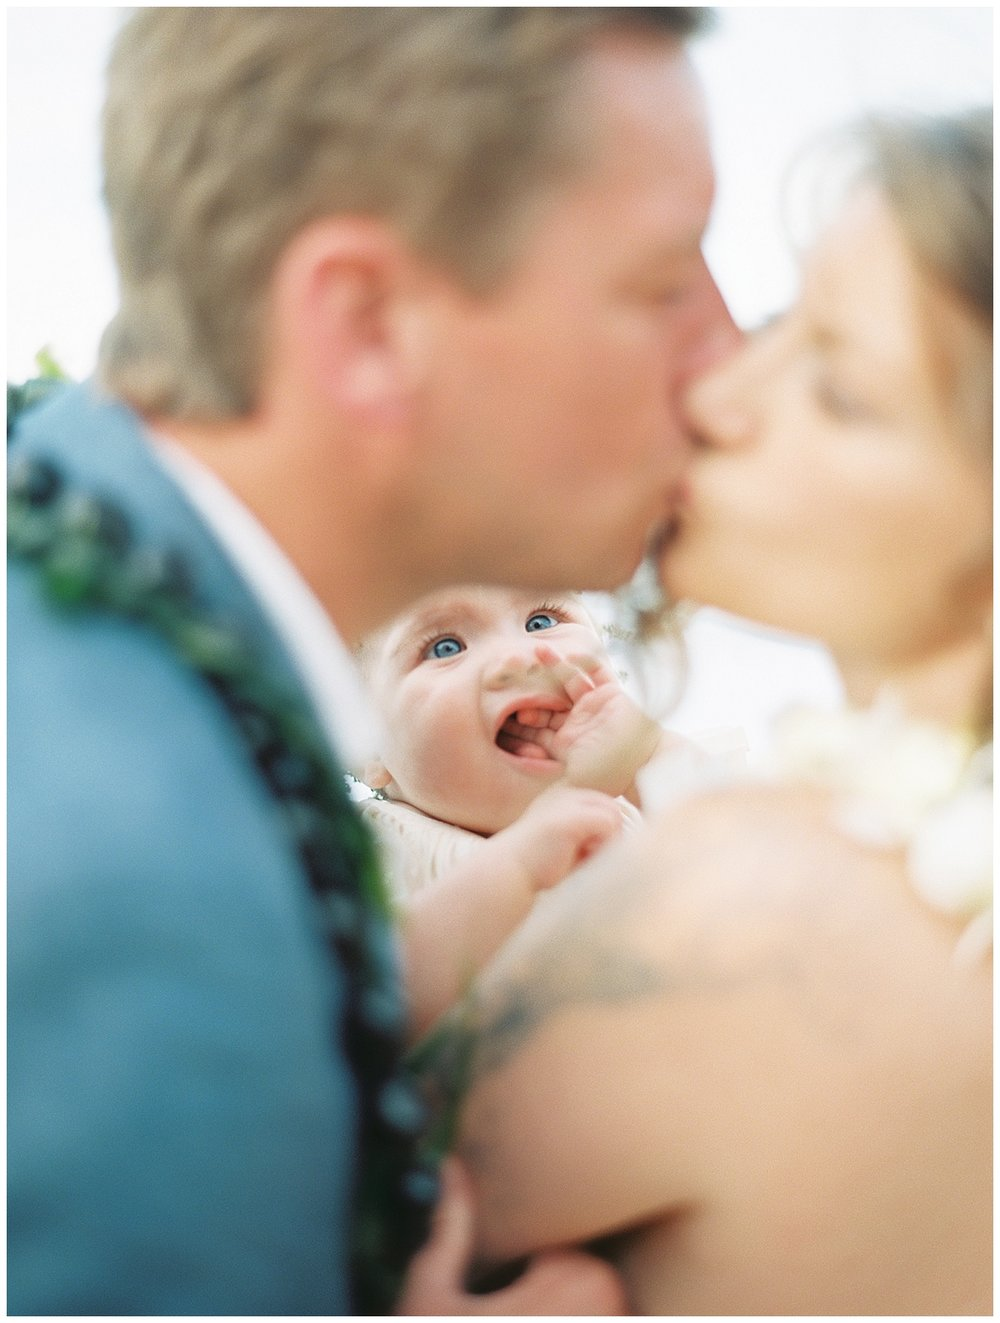 beach-elopement-bride-groom-kiss-while-daughter-watches.jpg